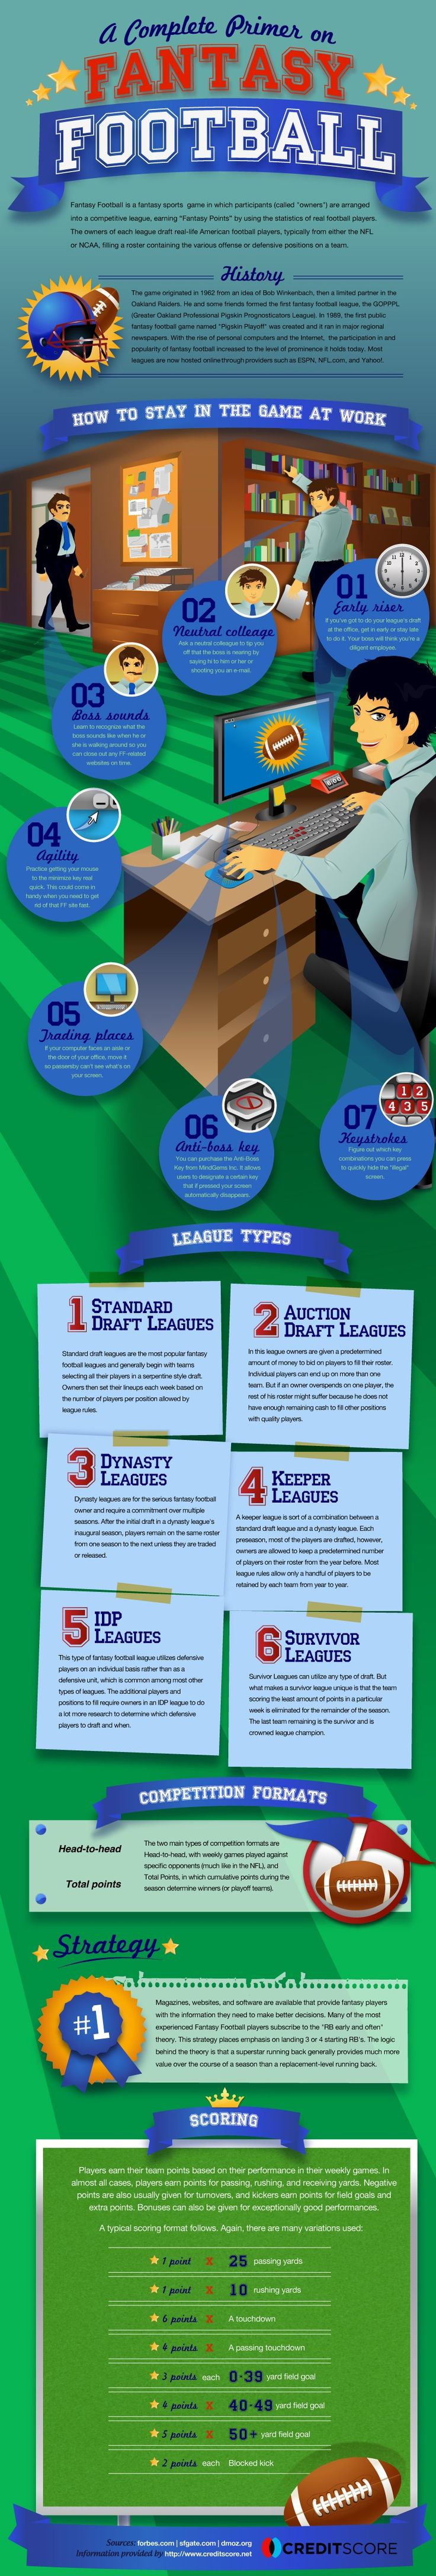 Fantasy Football Infographic - Super clean design